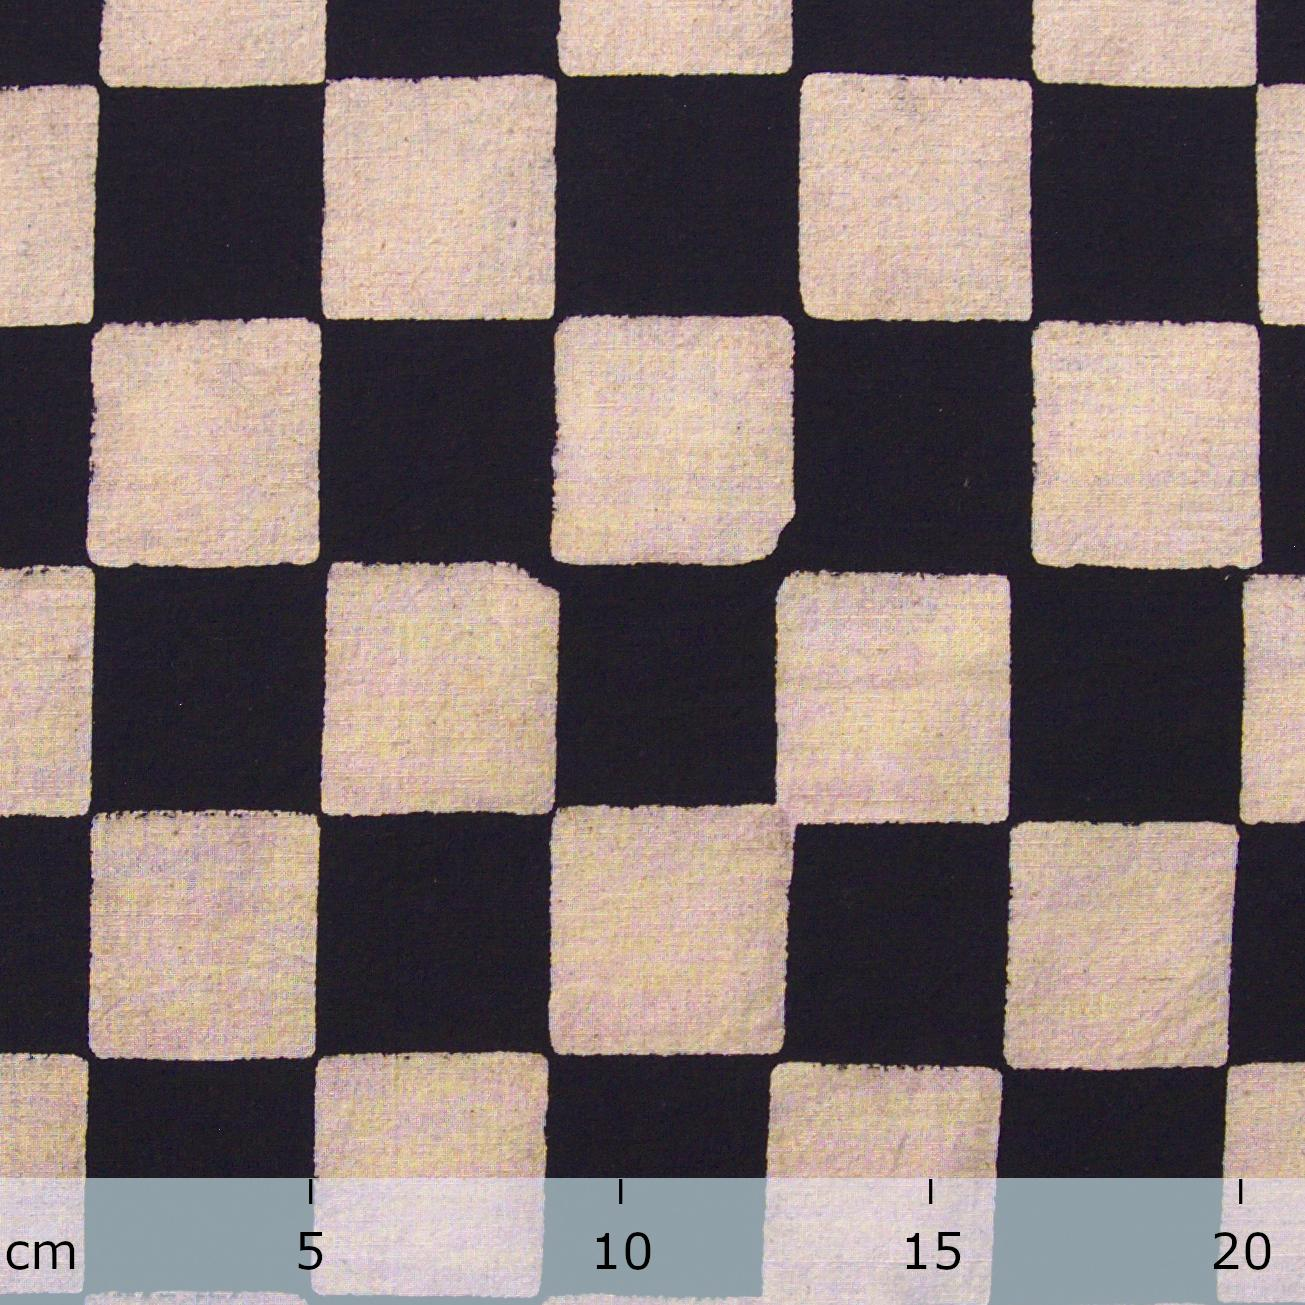 100% Block-Printed Cotton Fabric From India- Ajrak - Black White Resist Chequers Print - Ruler